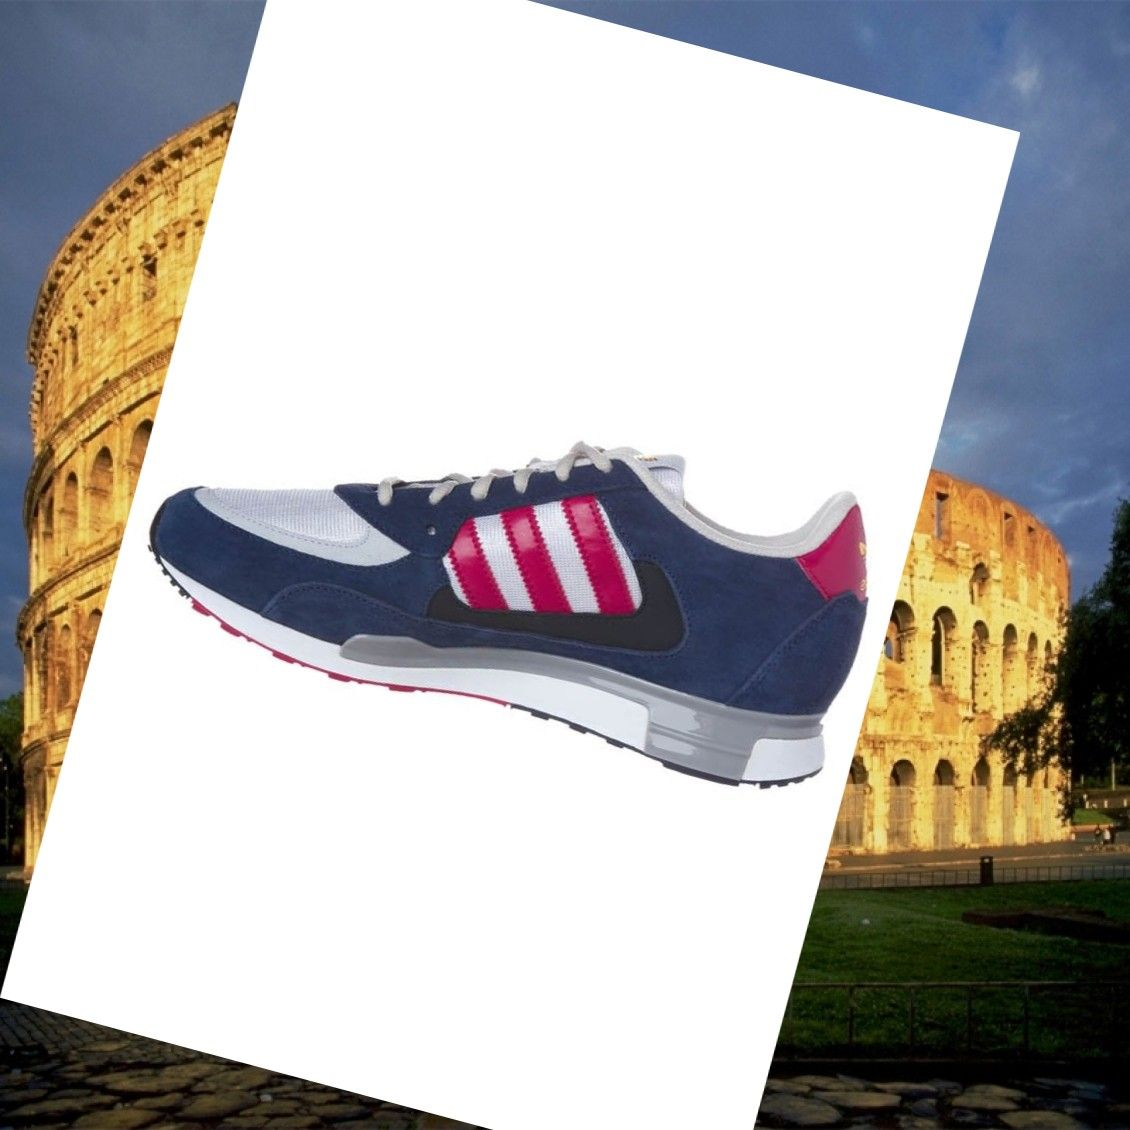 3fb07a4b24491 Adidas Zx 850 Running Shoes men s Navy Blue White Pink HOT SALE! HOT ...